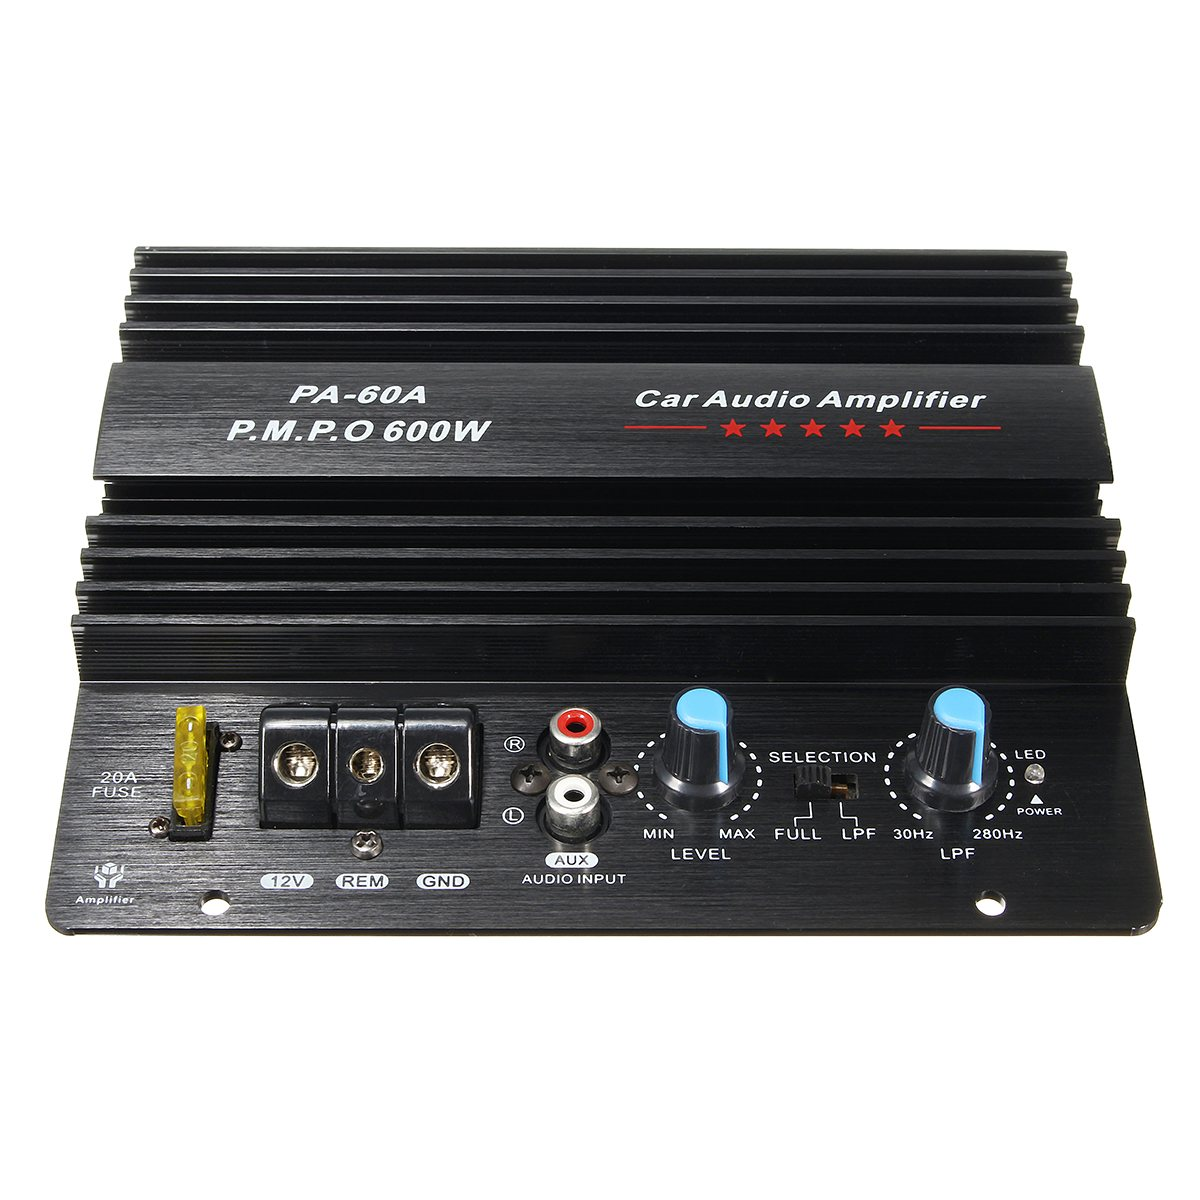 NEW 12V 600W Mono Car Audio Power Amplifier Powerful Bass Subwoofers Amp PA-60A kroak 12v 600w car amplifier board powerful subwoofer car audio amplifier mono stereo power amplifier bass black